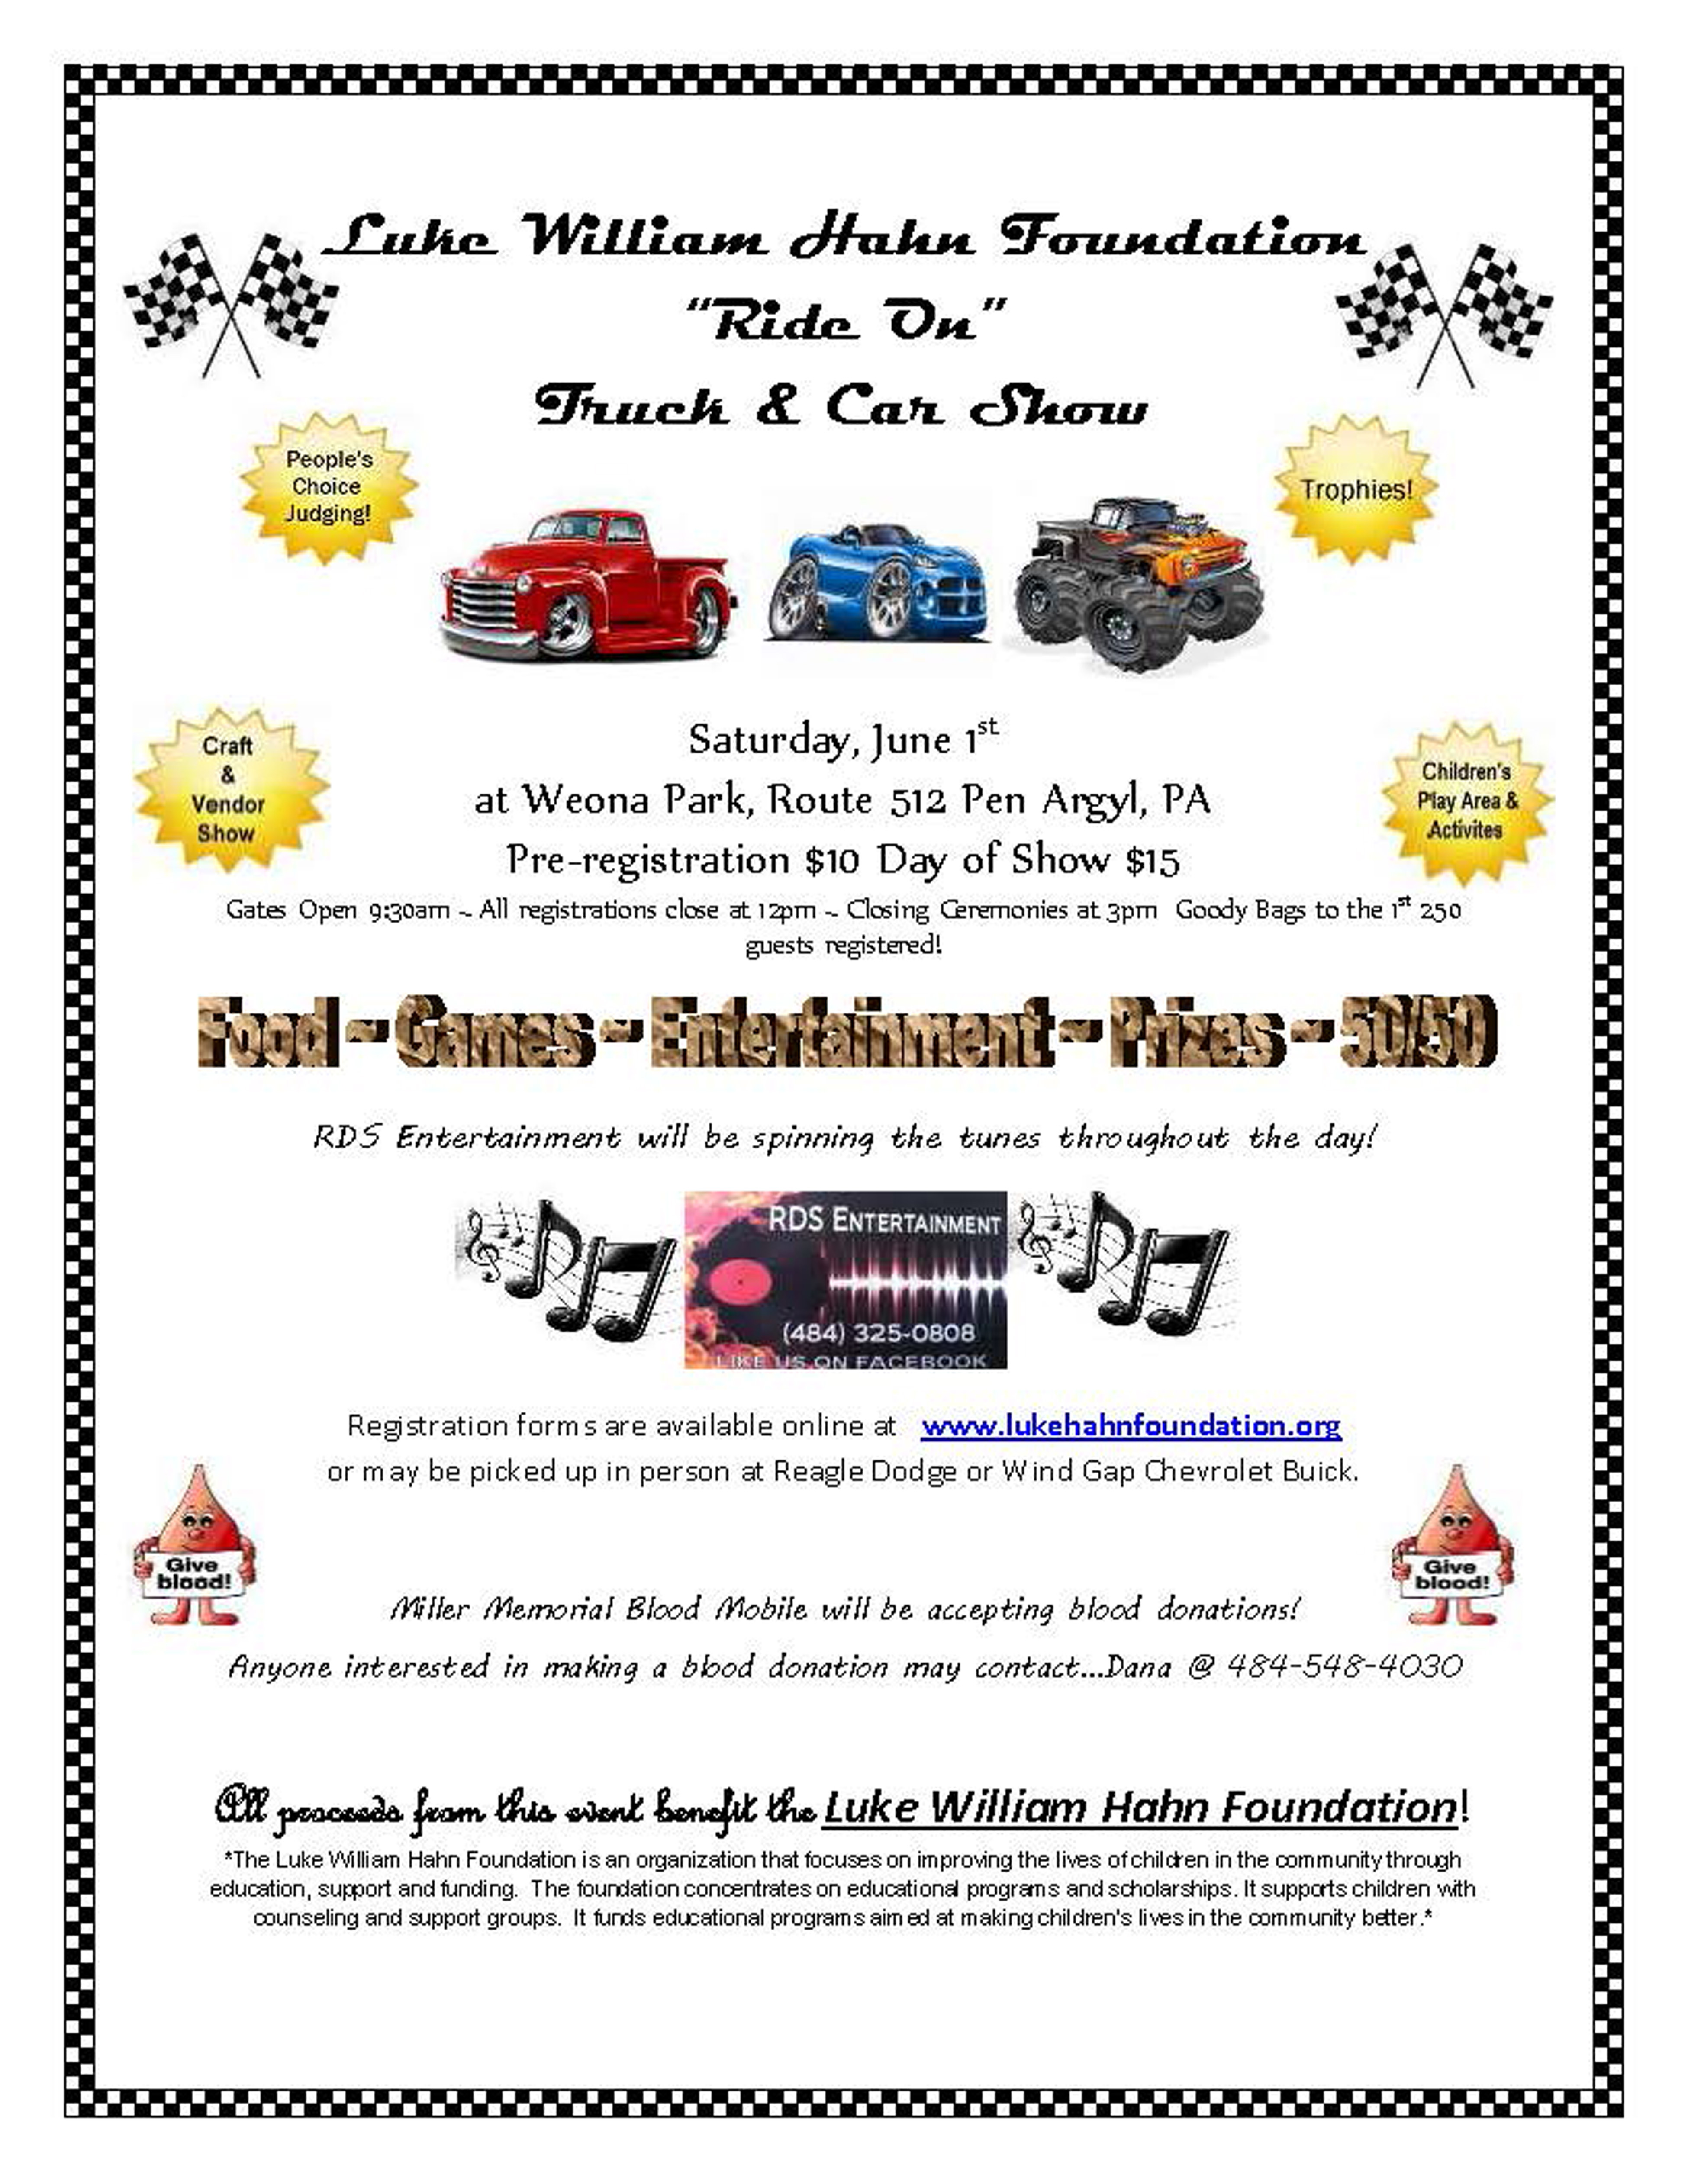 LWH Foundation Truck and Car Show Flyer